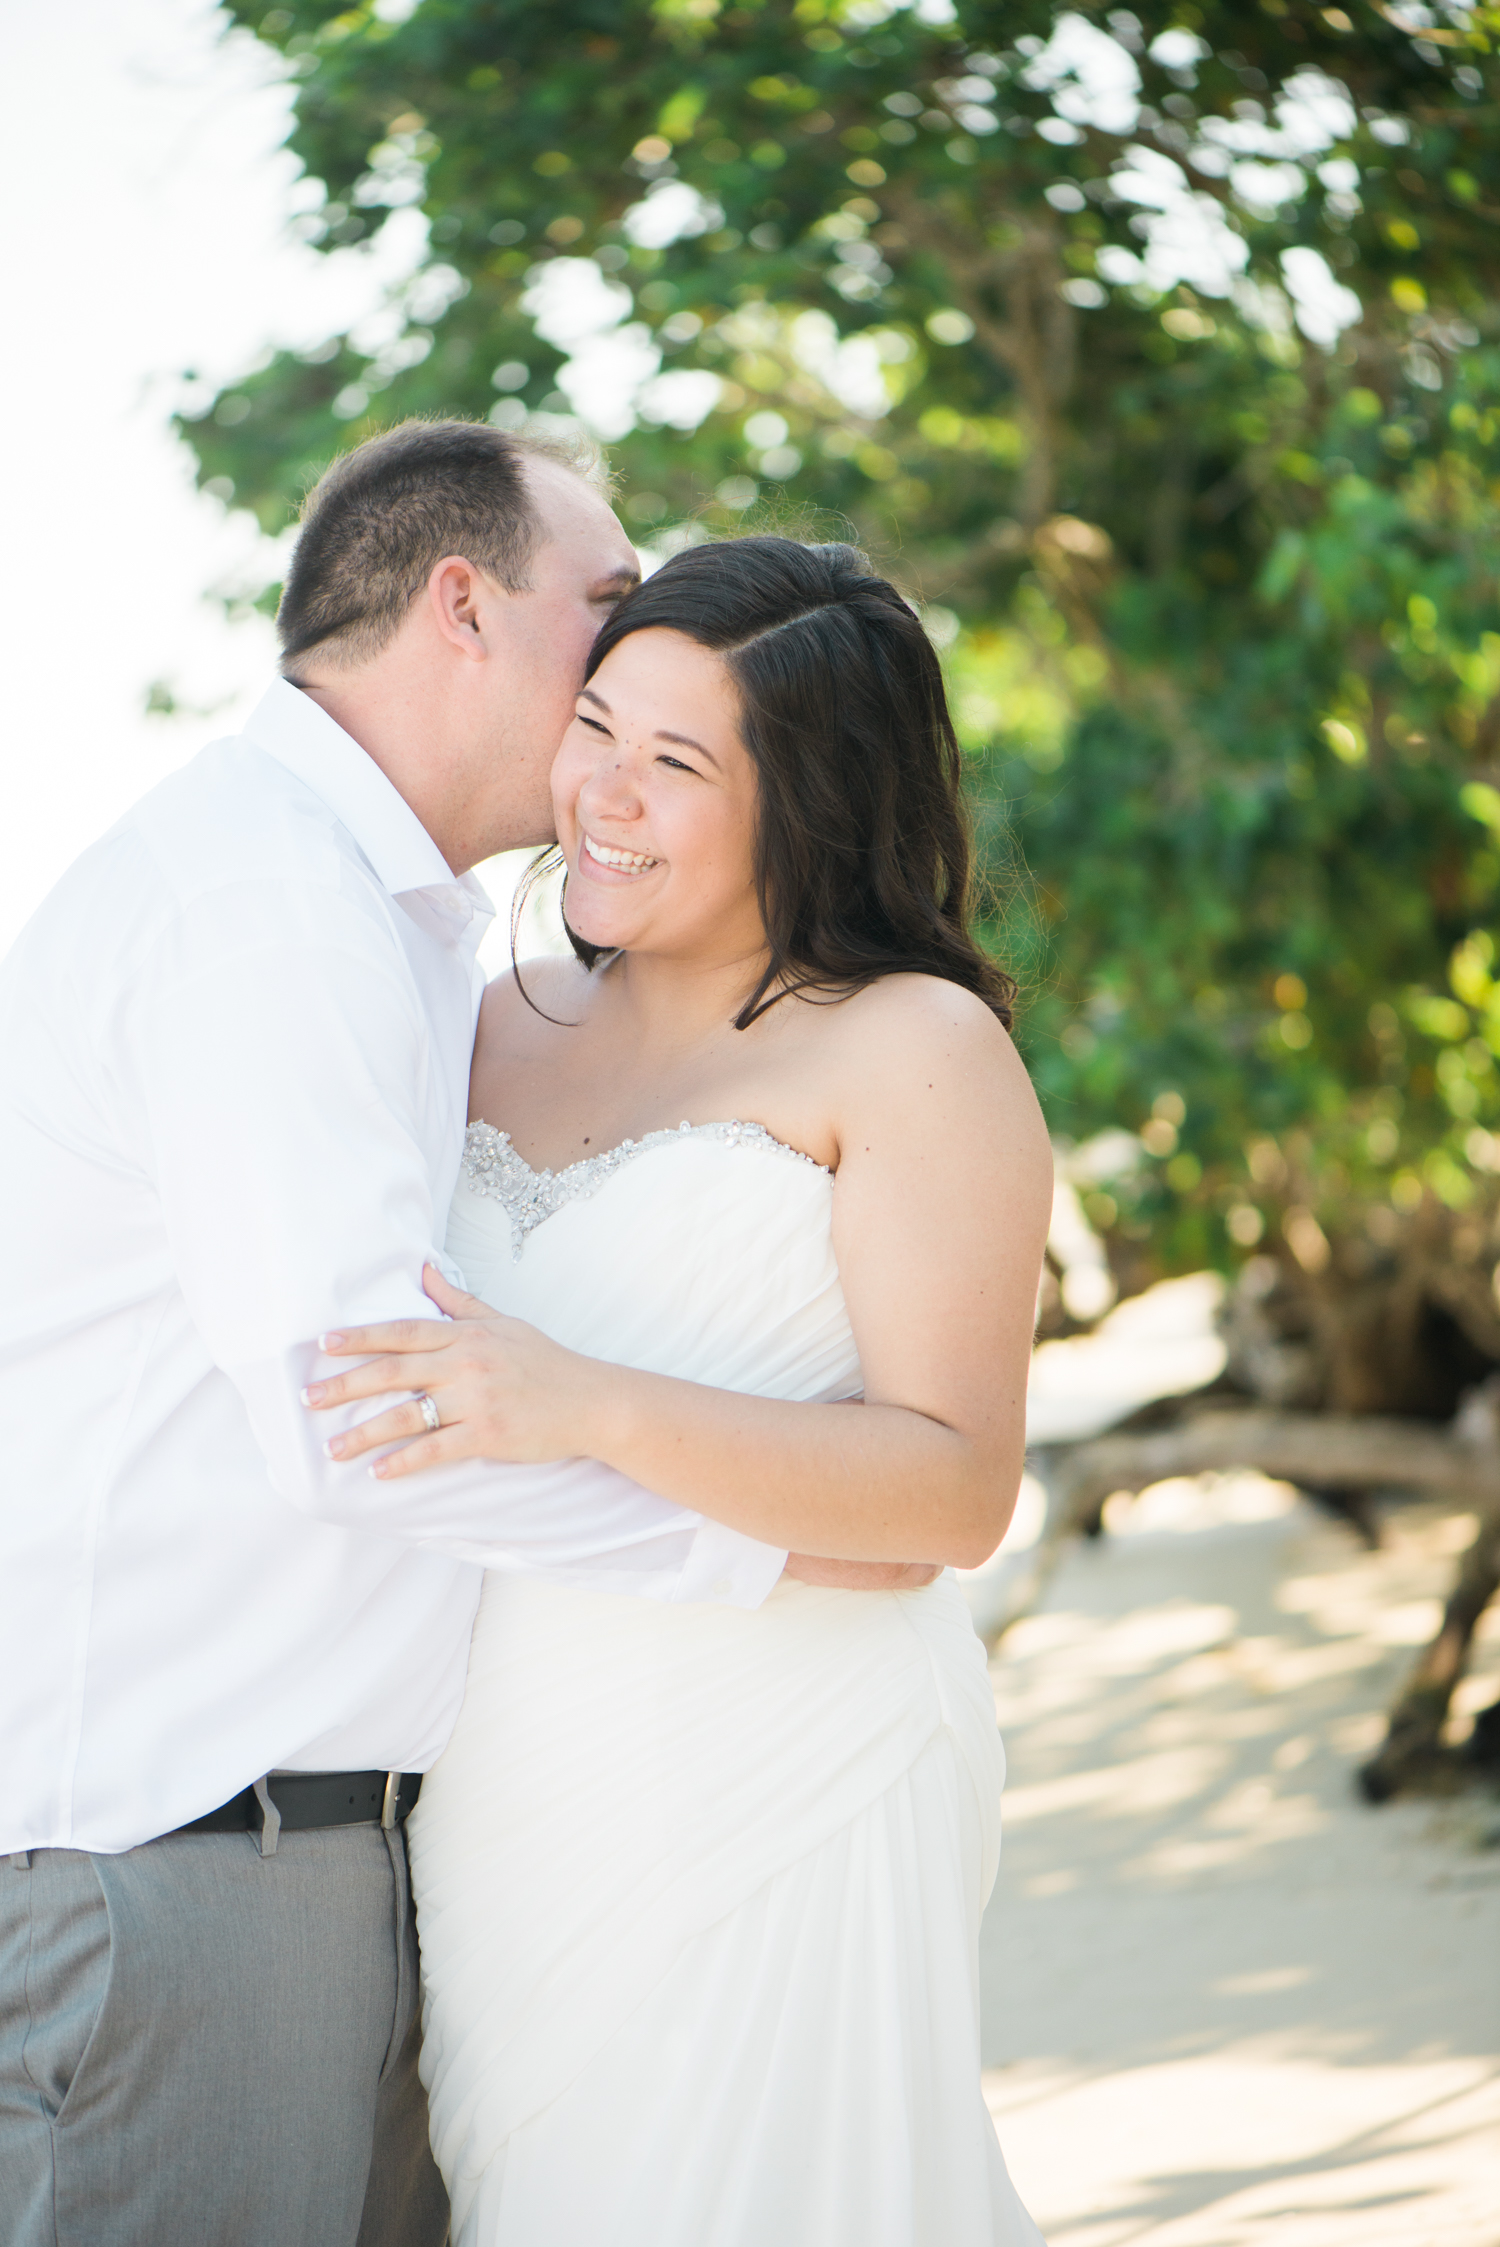 JadeandRyan-Montego-Bay-Jamaica-Wedding-Iberostar-Resort-Beach-91.jpg